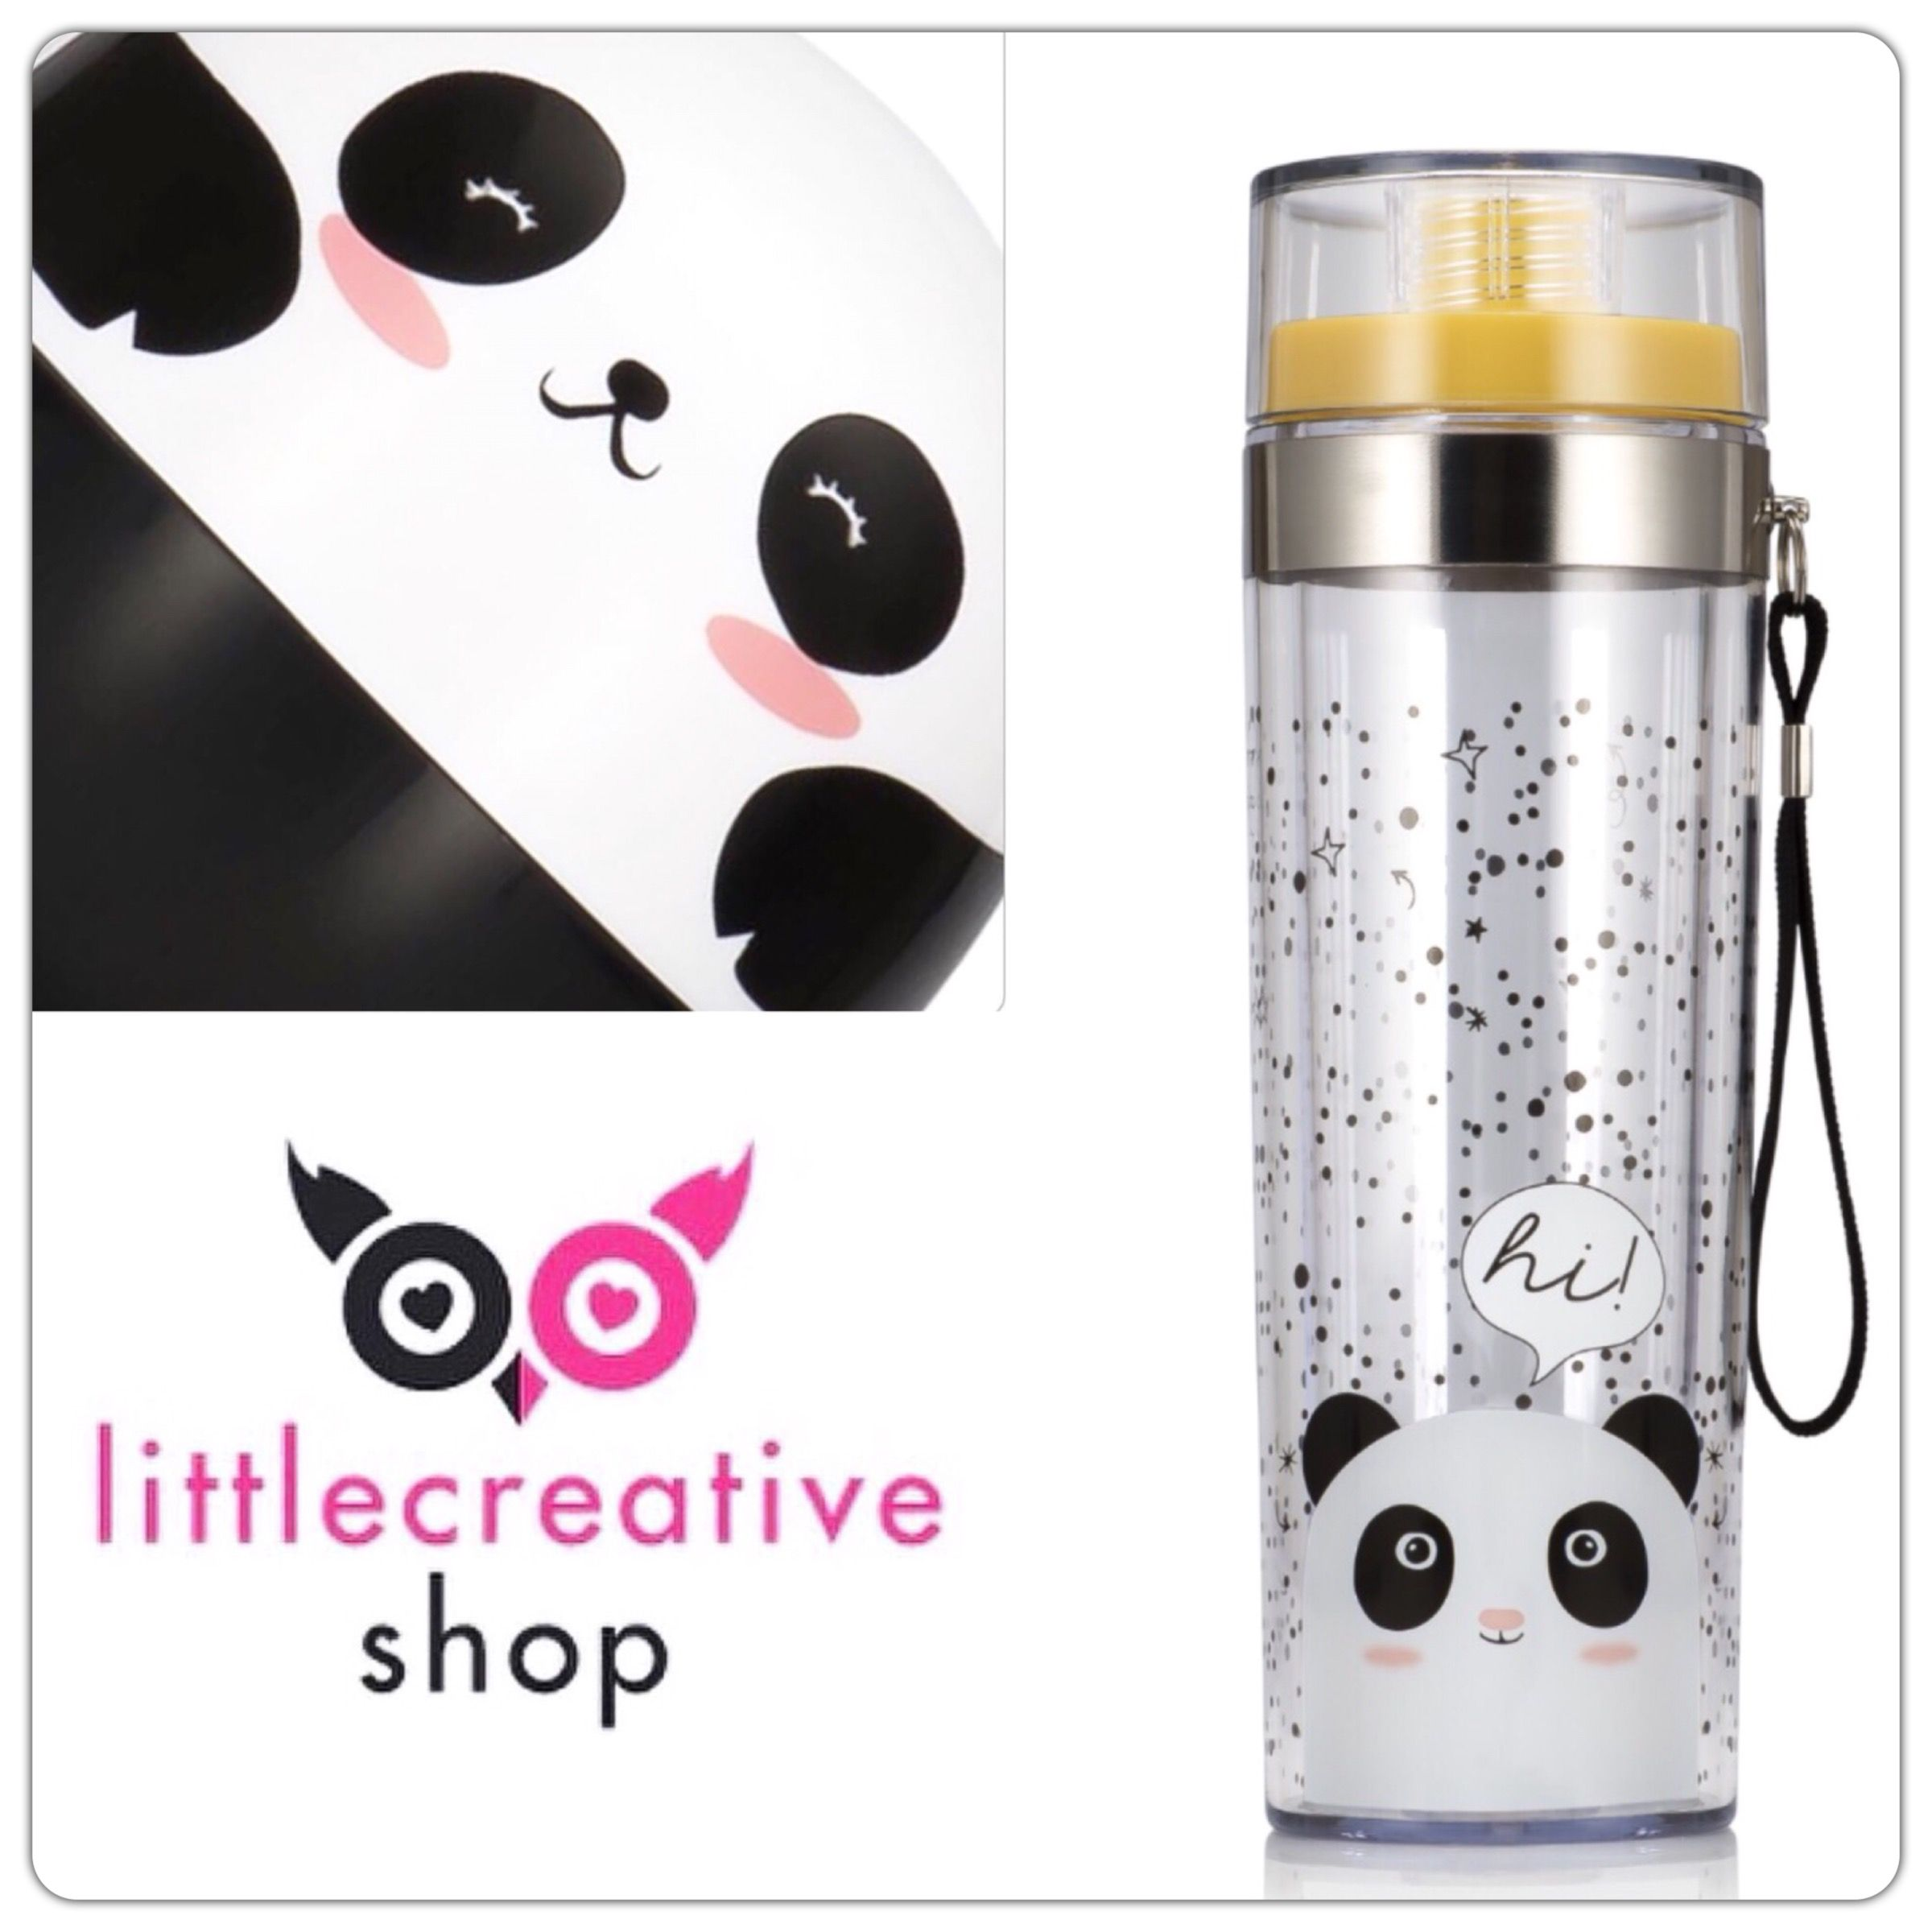 Deze Panda Drinkbeker is handig voor onderweg of voor op school! 💕🐼 we love panda's ⭐️ www.littlecreativeshop.nl #littlecreativshop #panda #drinkbottle #drinkbeker